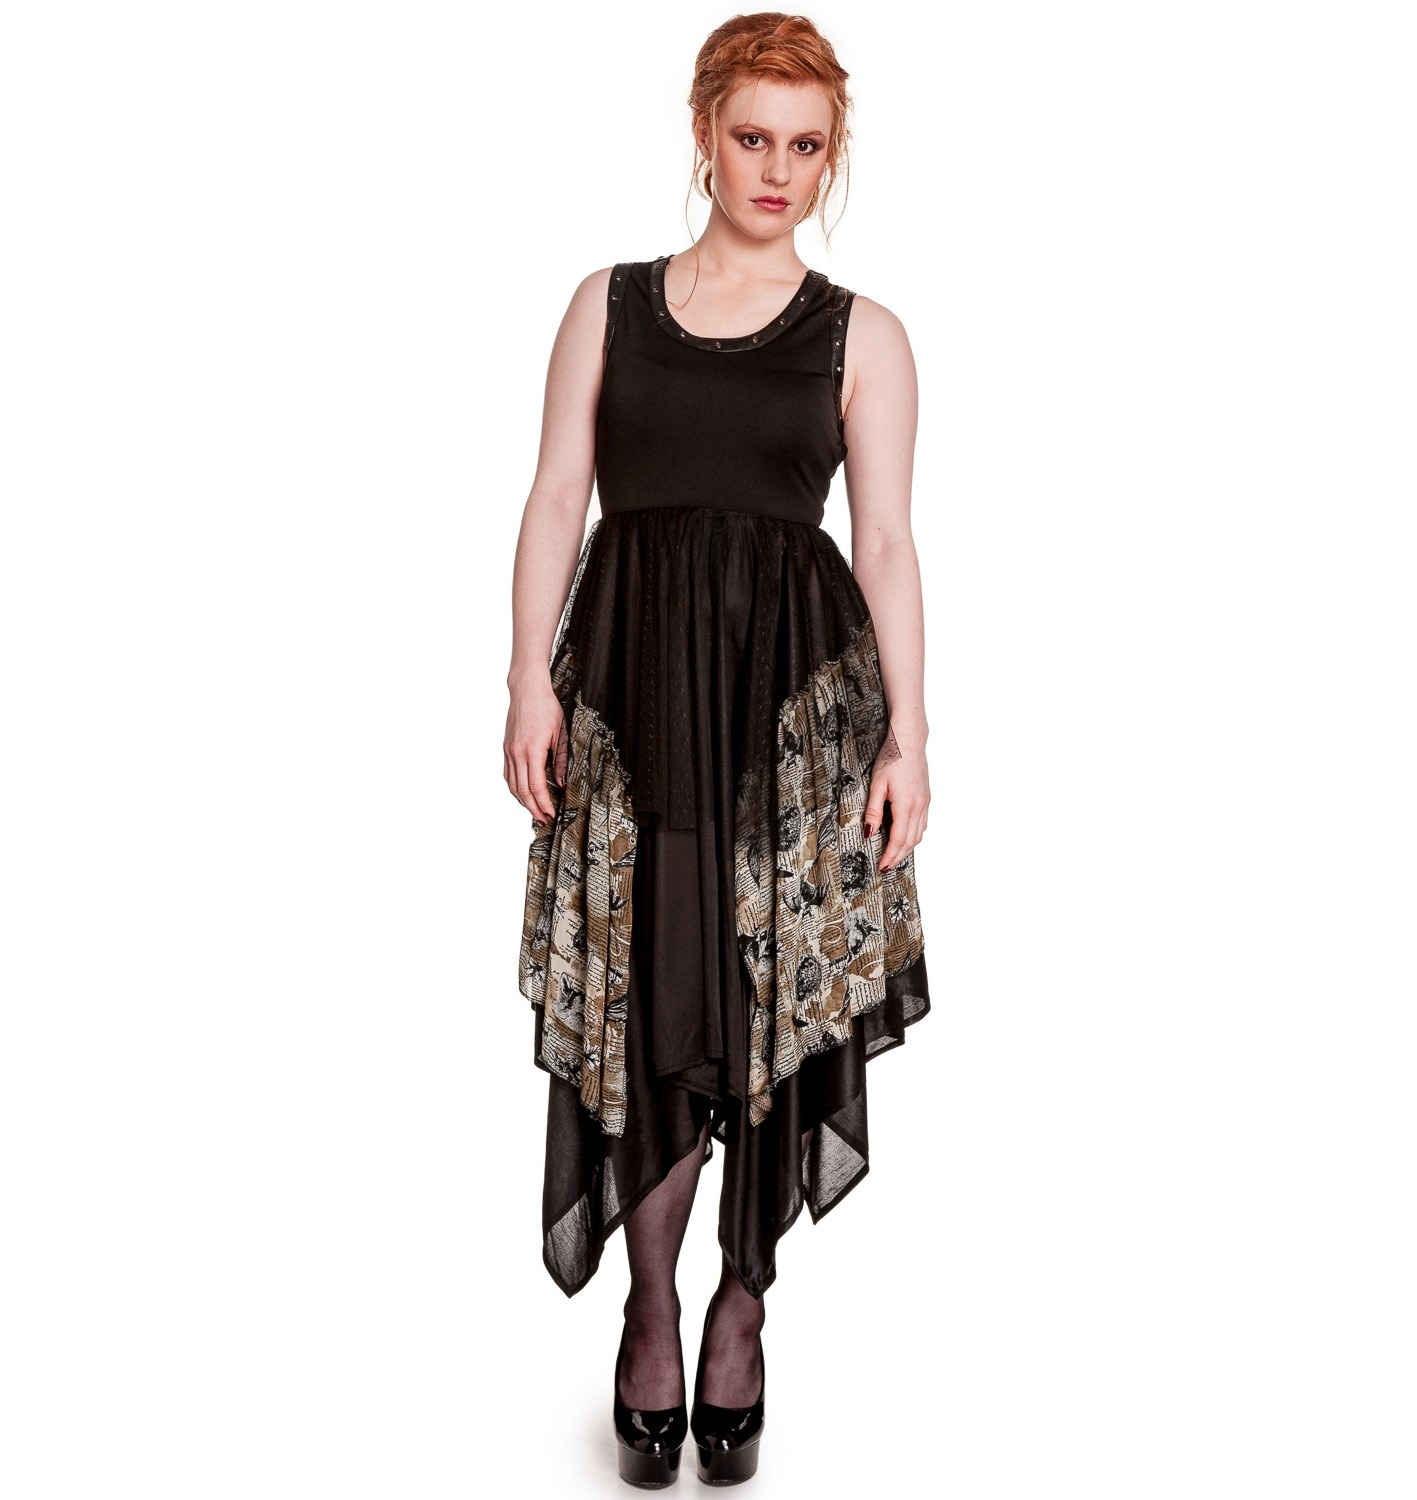 Hell-Bunny-Spin-Doctor-Goth-Black-Dress-ECLIPSE-Grunge-Steampunk-All-Sizes thumbnail 7